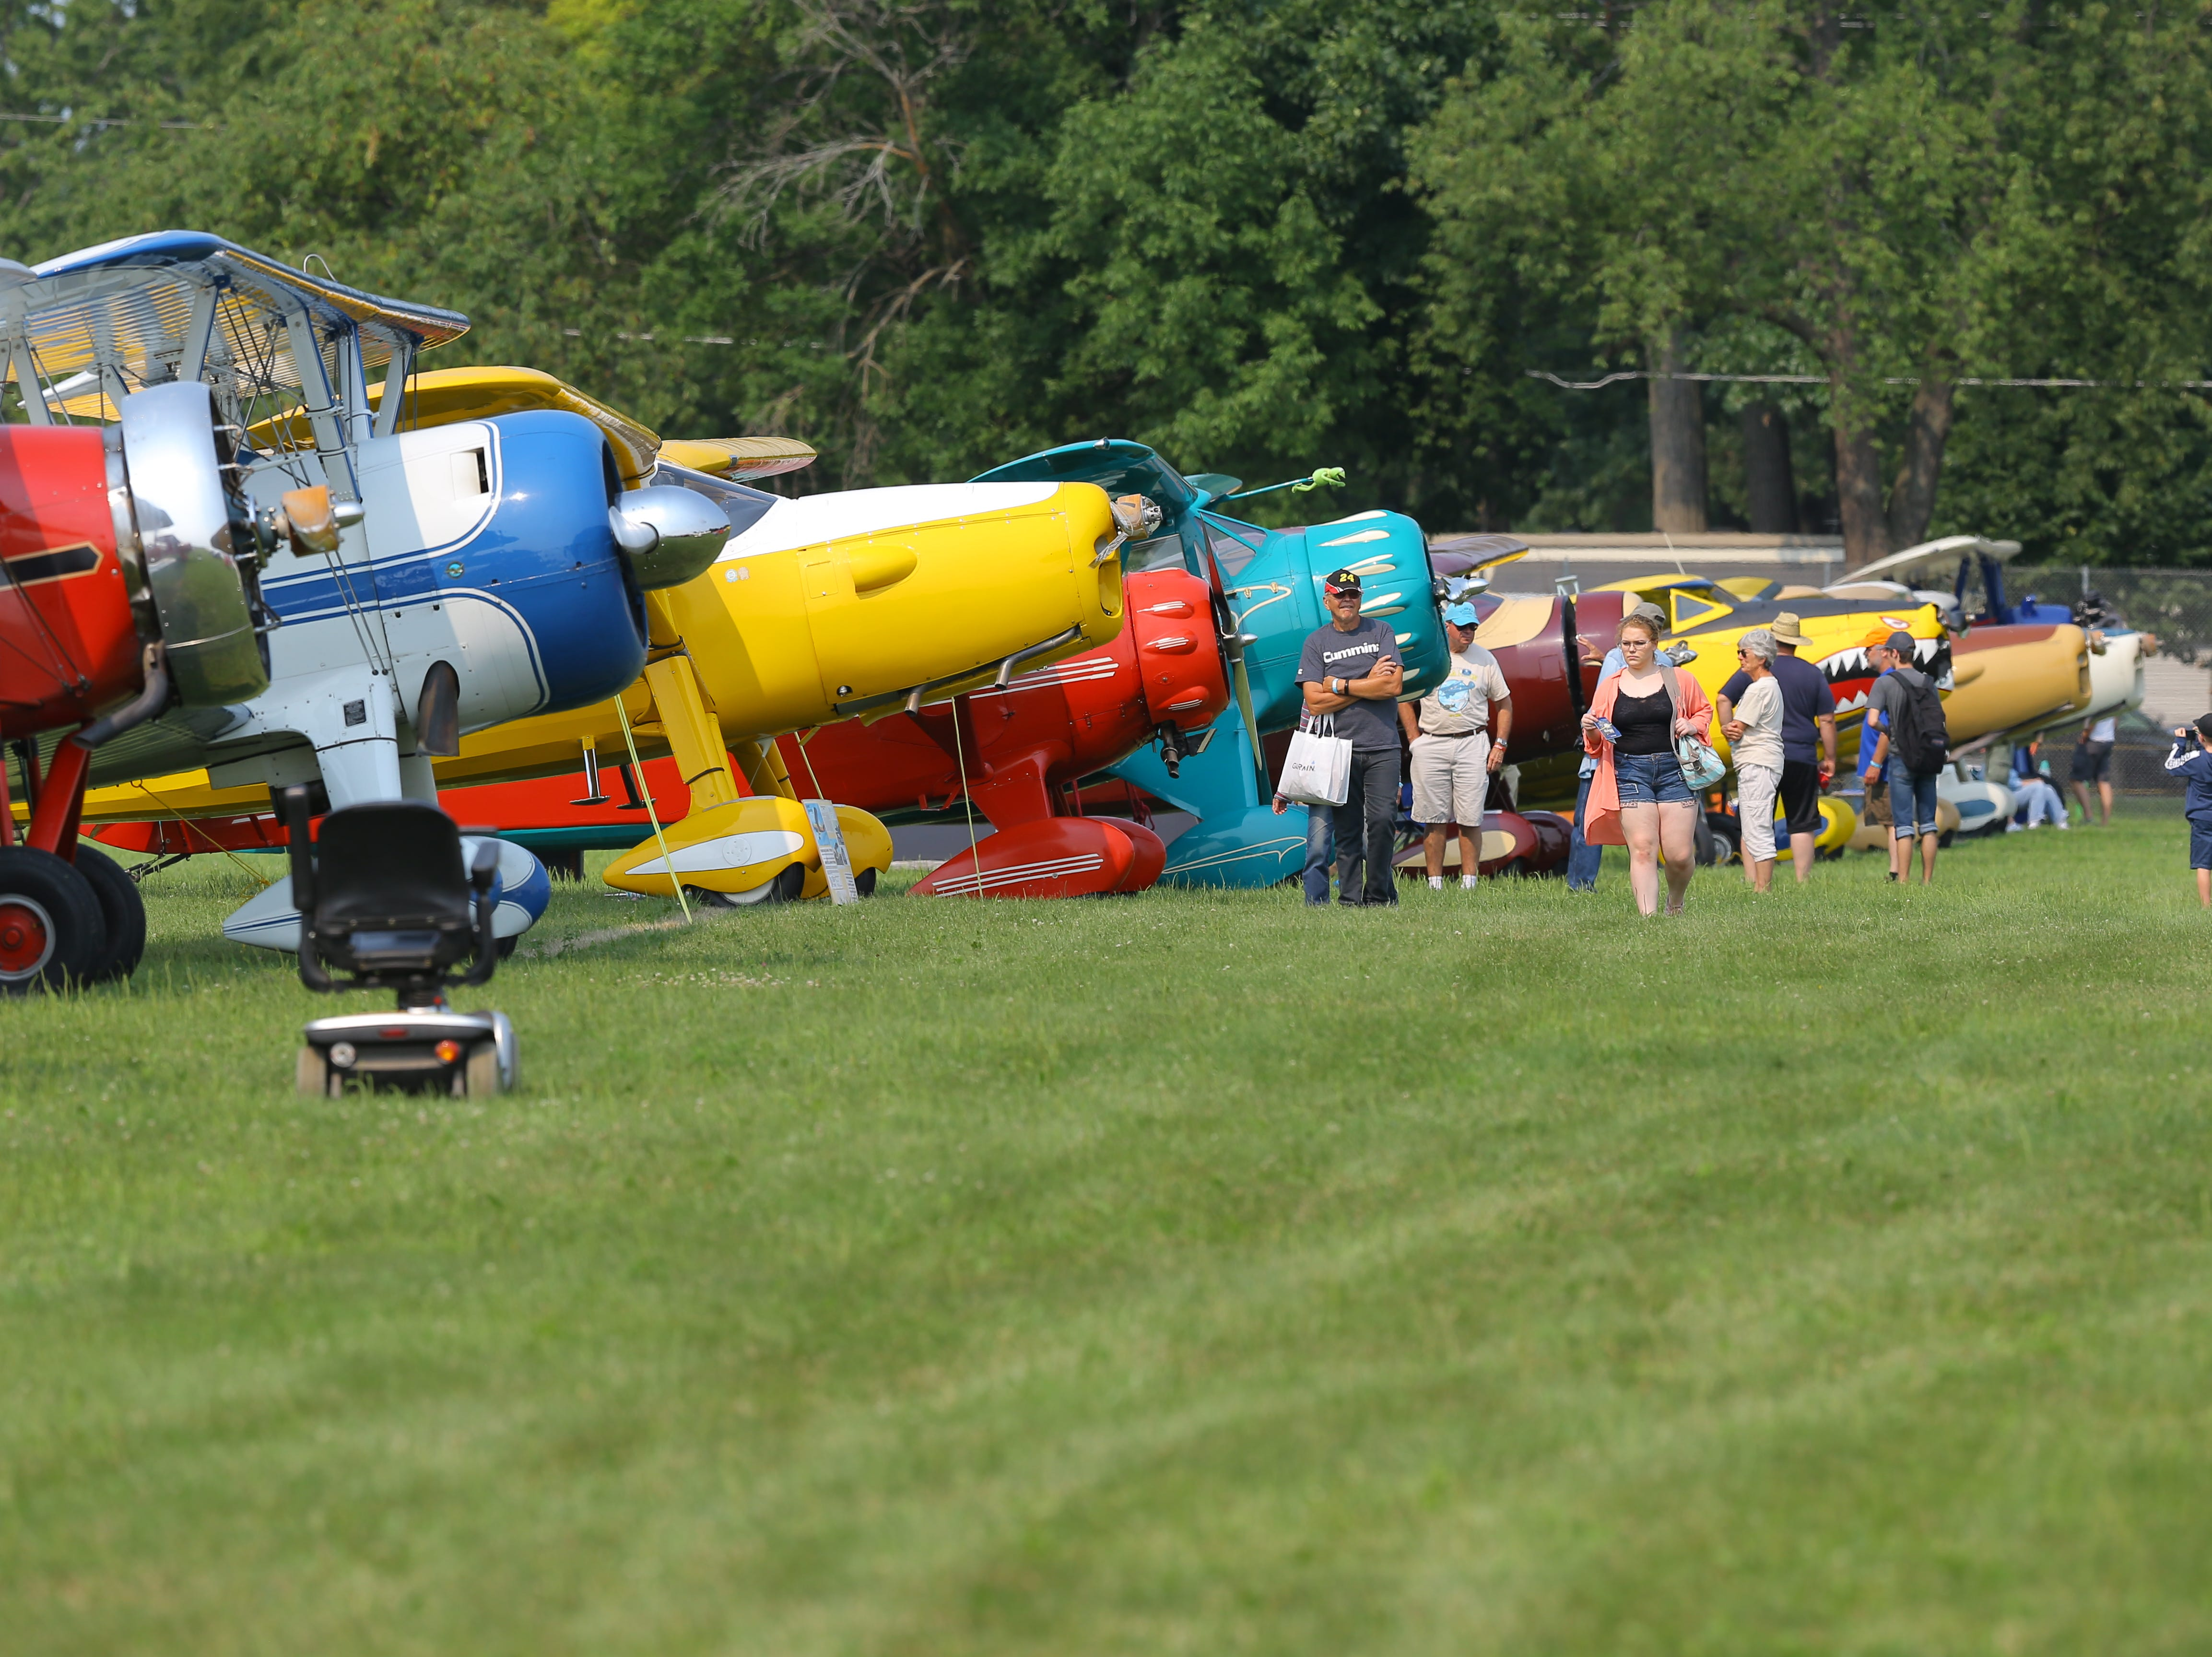 The Vintage Aircraft area drew many fans of the planes.  The first day of AirVenture 2018 opened on July 23, 2018.  Thousands of people will pass through the gates of AirVenture. Joe Sienkiewicz/USA Today NETWORK-Wisconsin